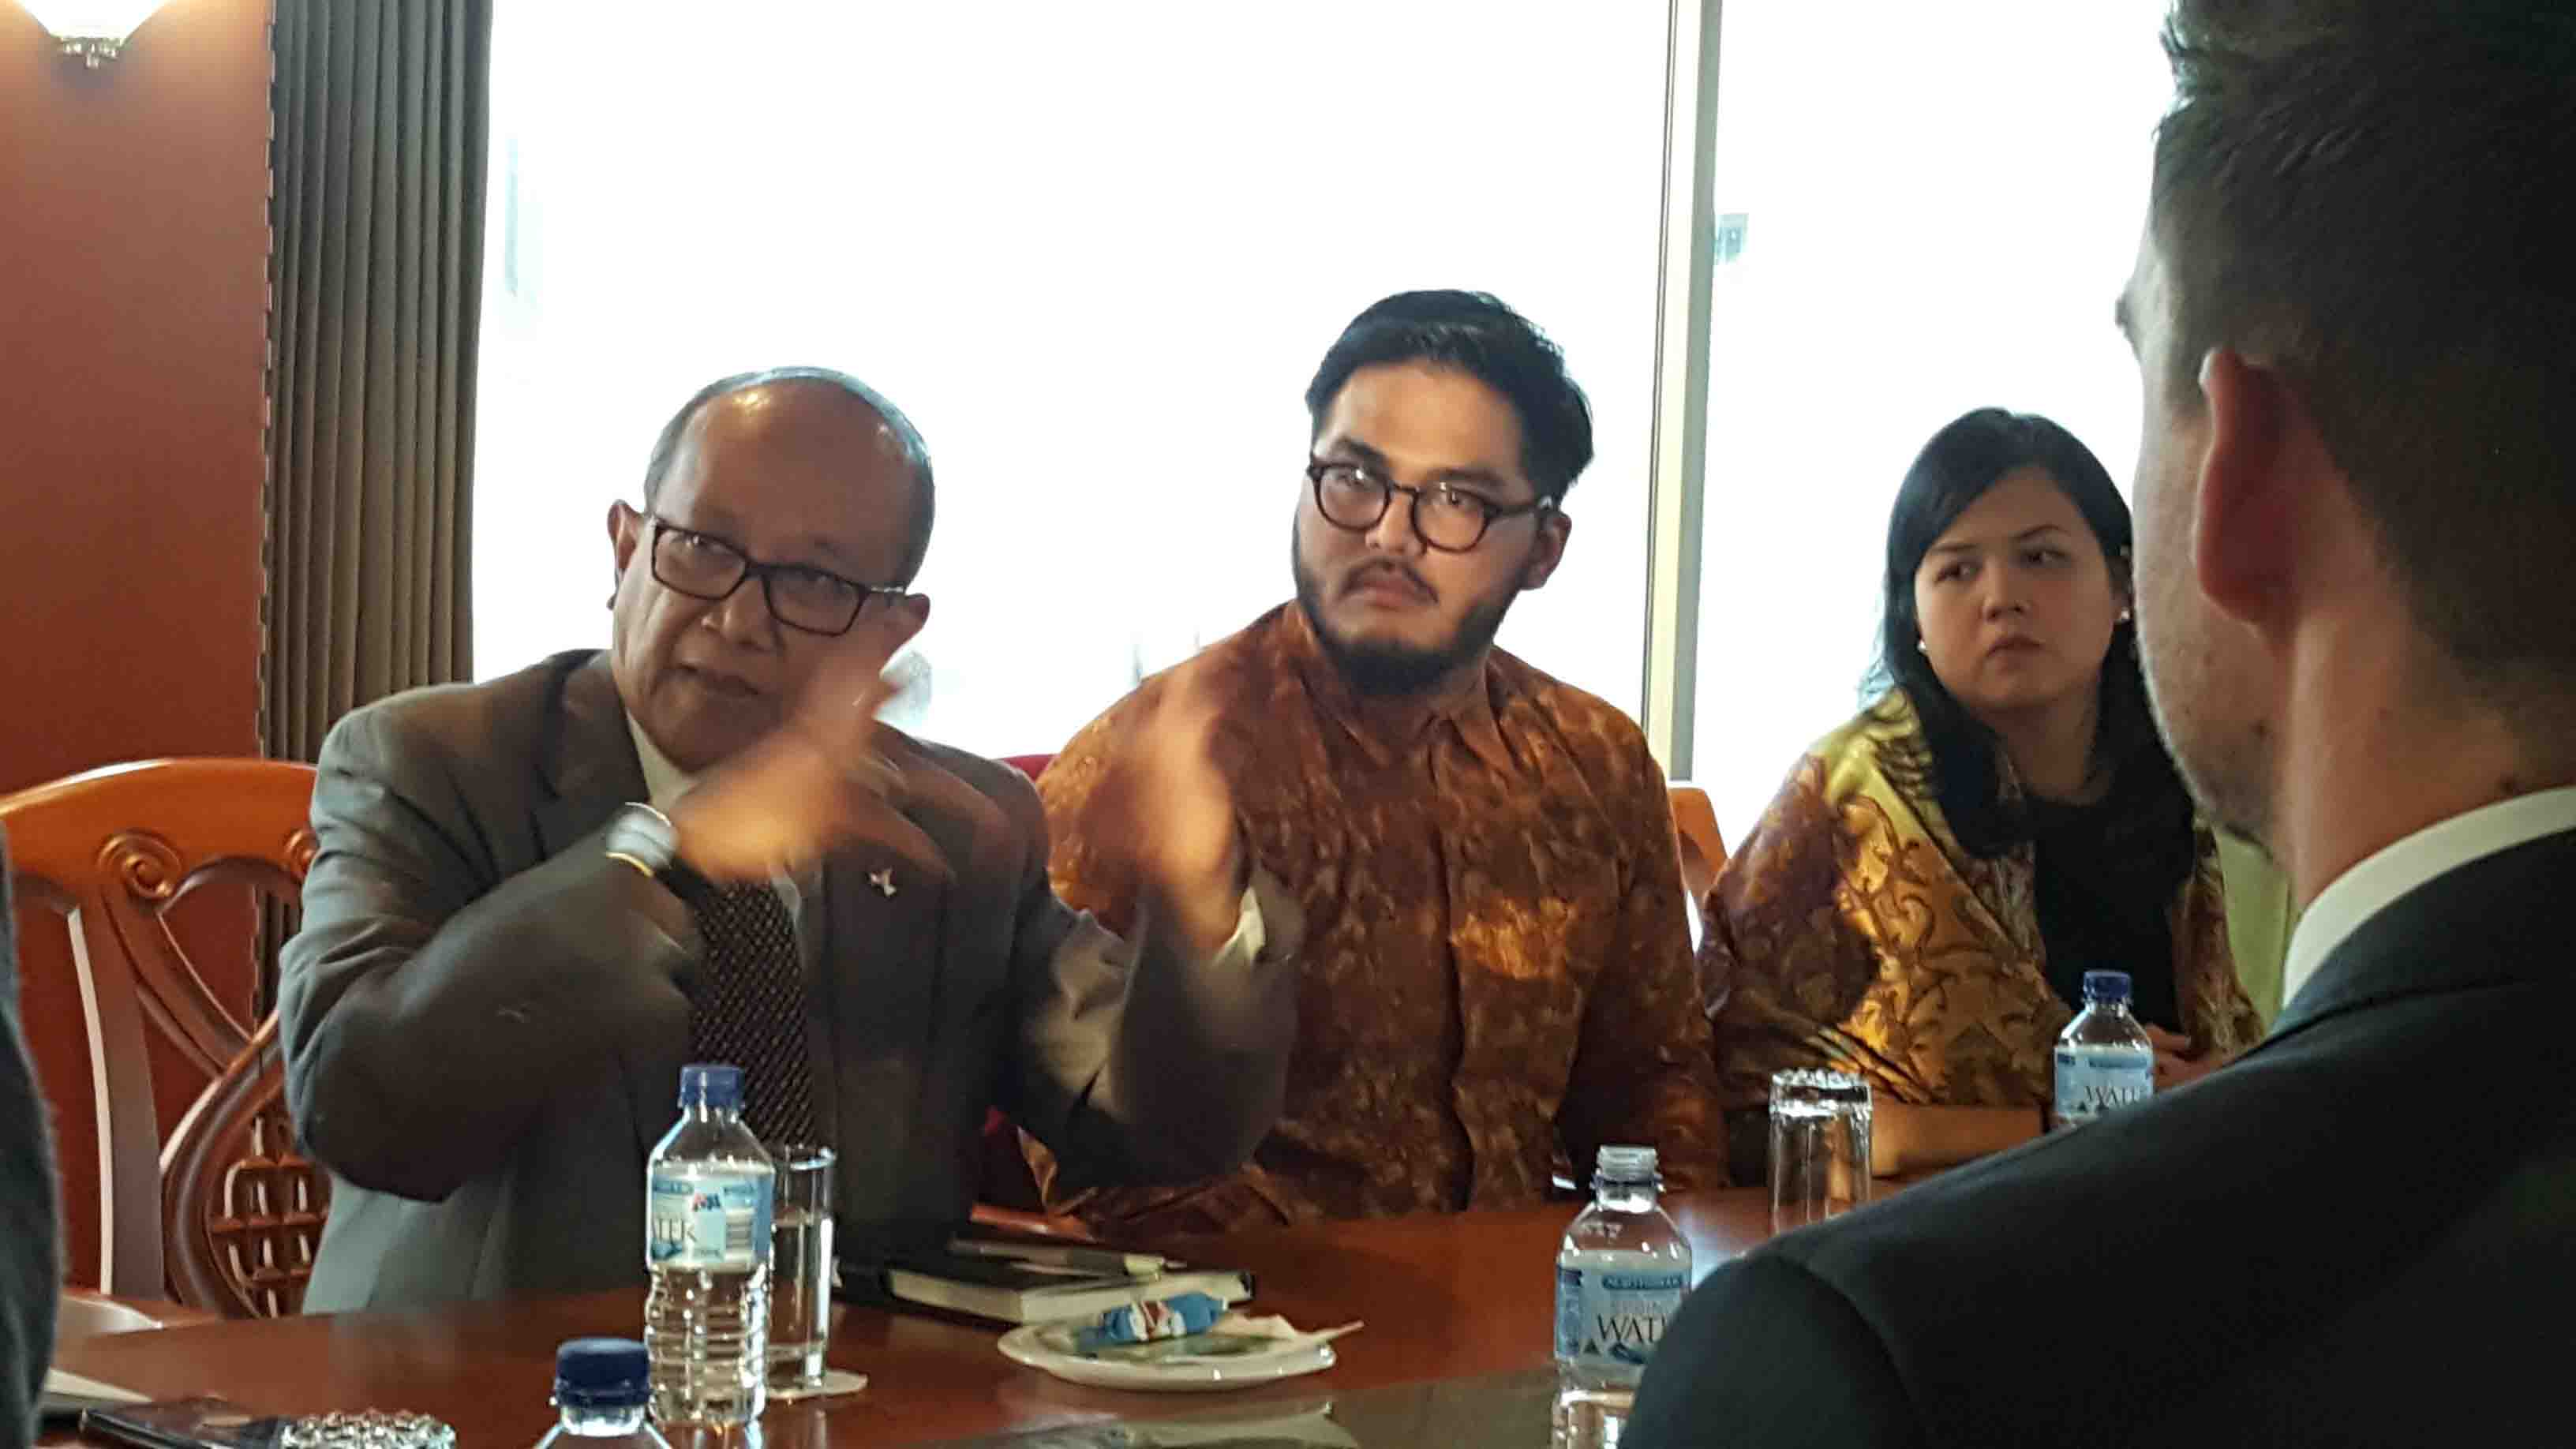 Indonesian leaders and entrepreneurs of technology-enabled start-ups met with Indonesia's Ambassador to Australia Najib Riphat Kesoema during their short course this month in Australia.